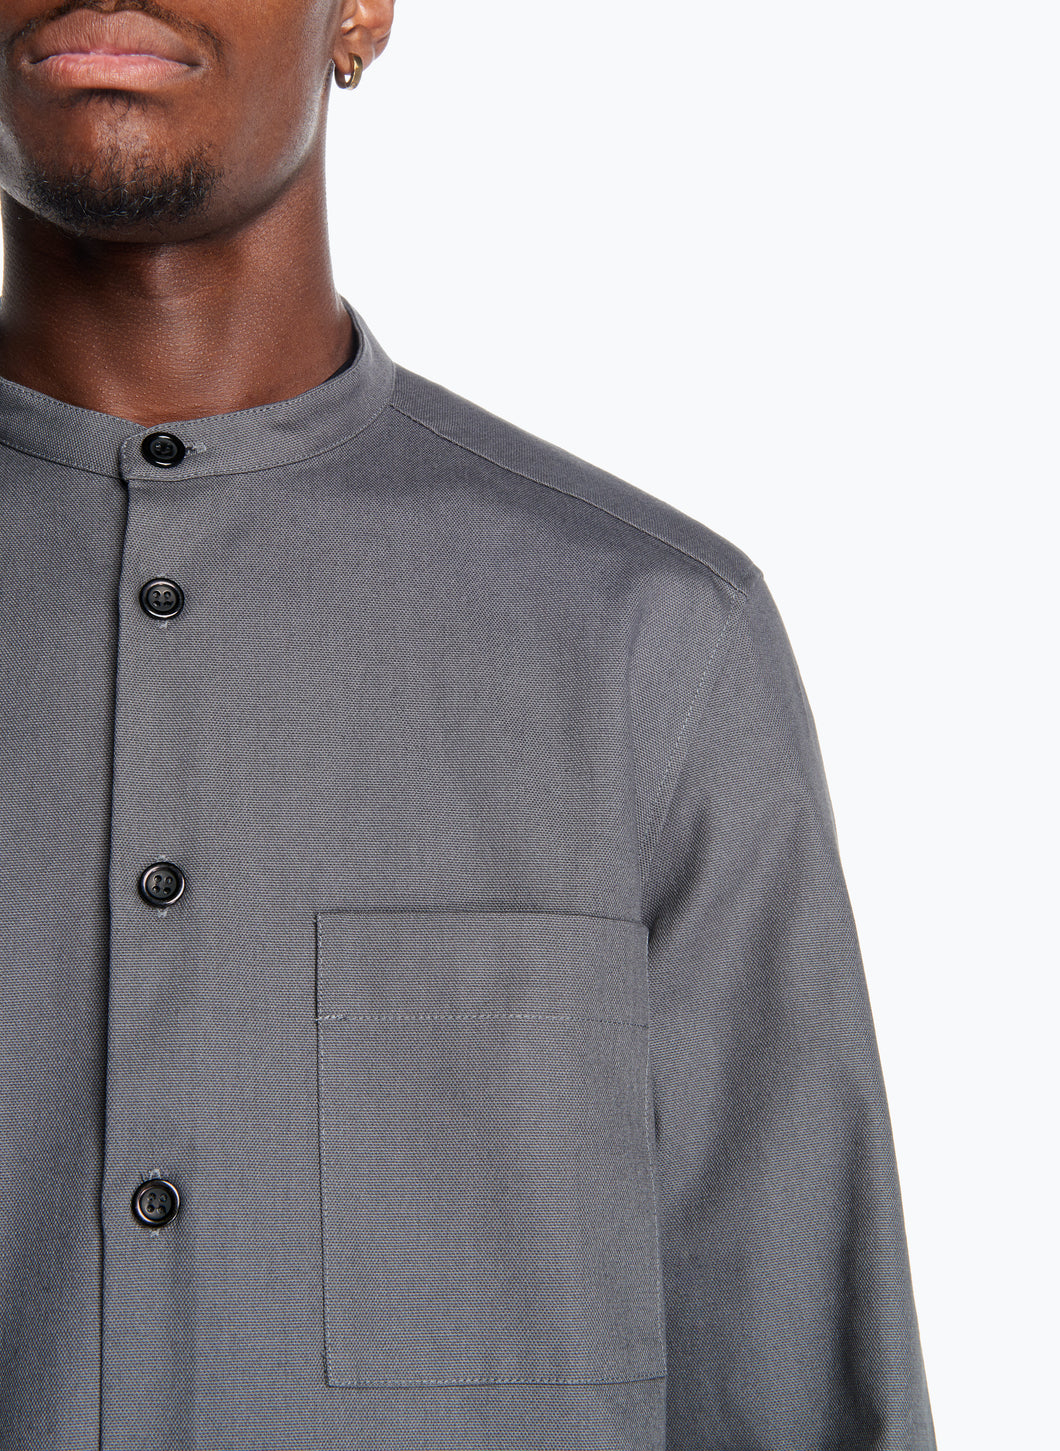 Mandarin Collar Overshirt in Grey Canvas